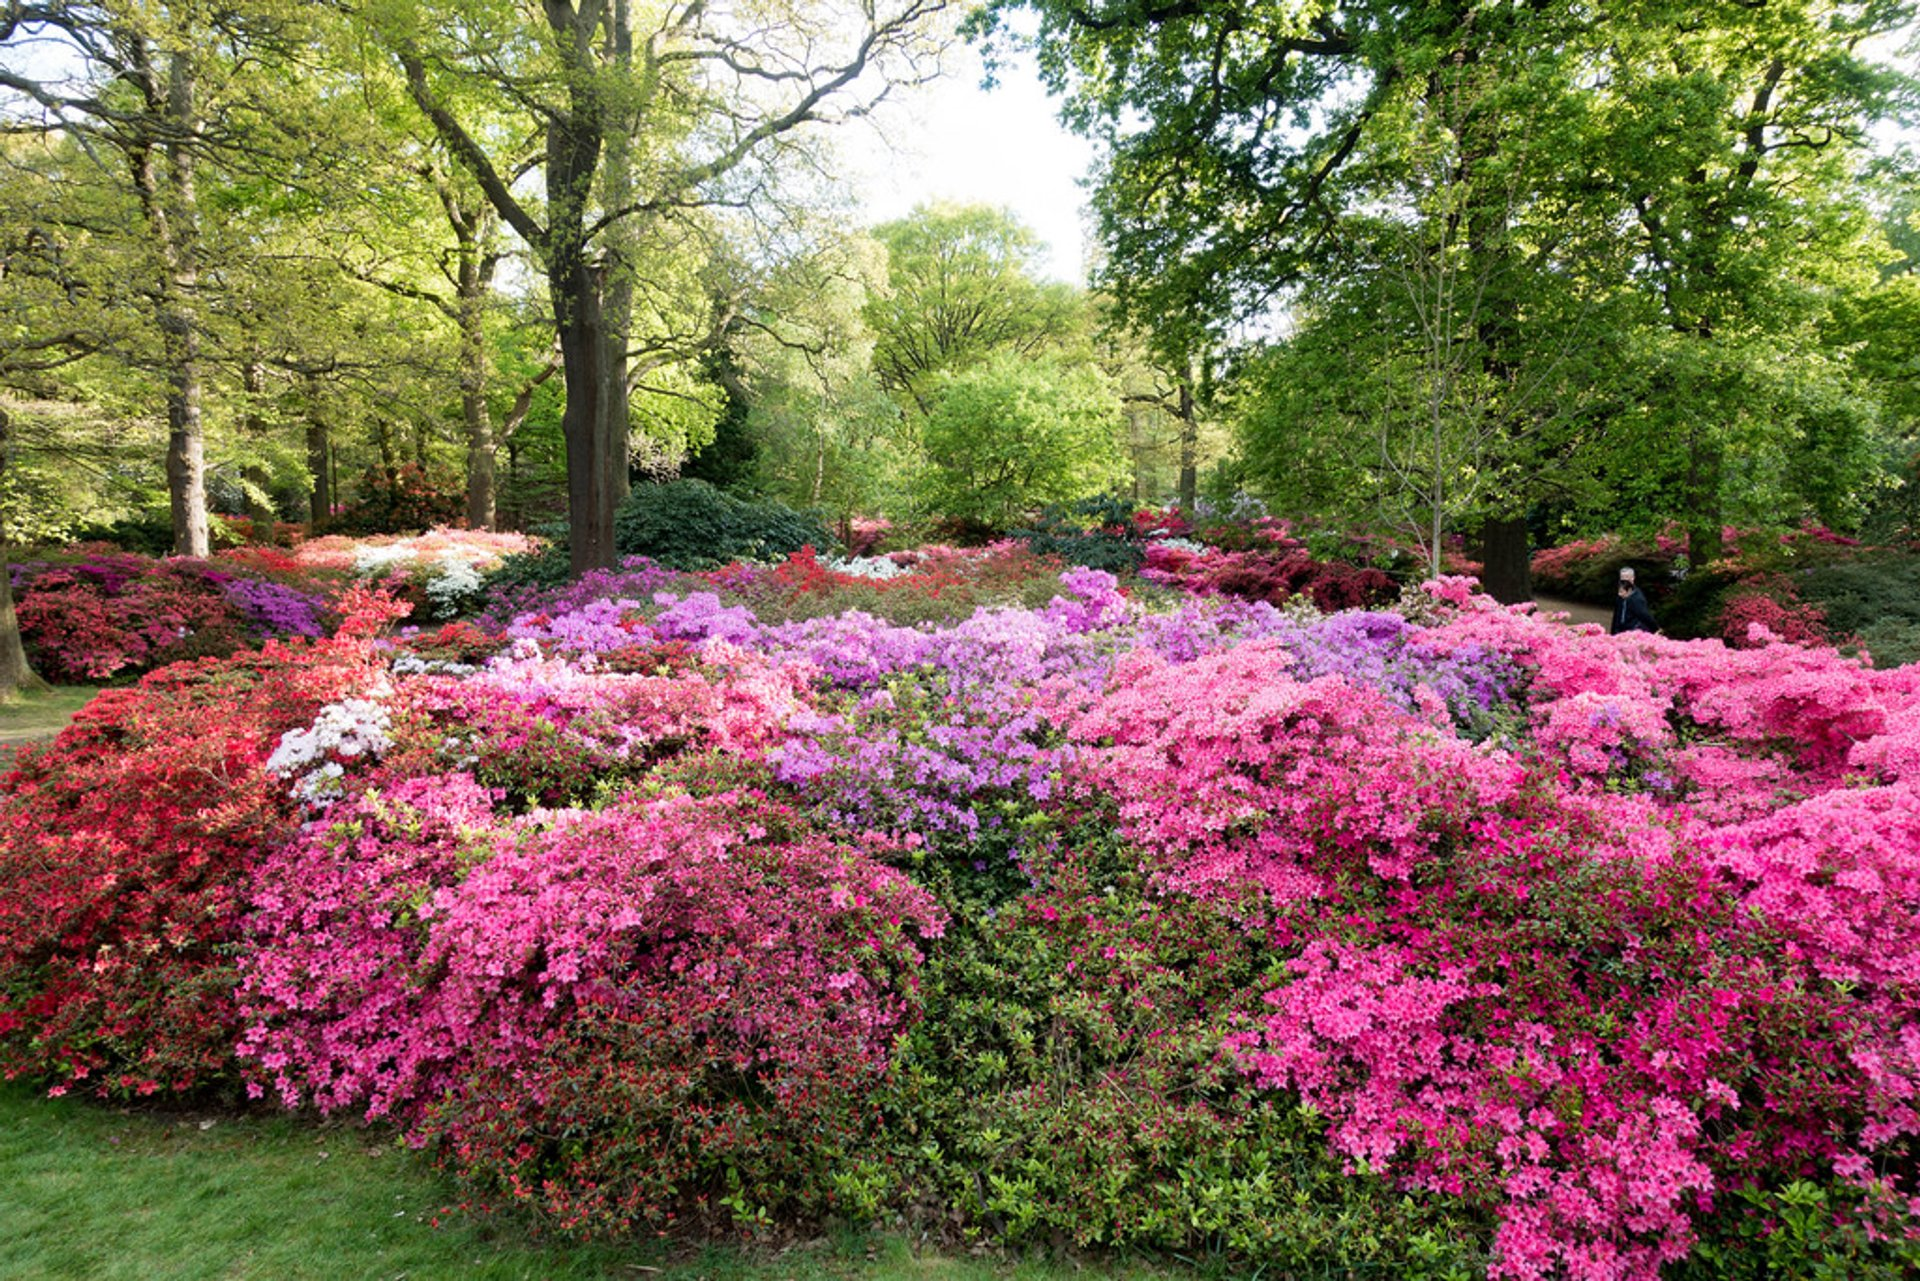 Rhododendrons in London 2020